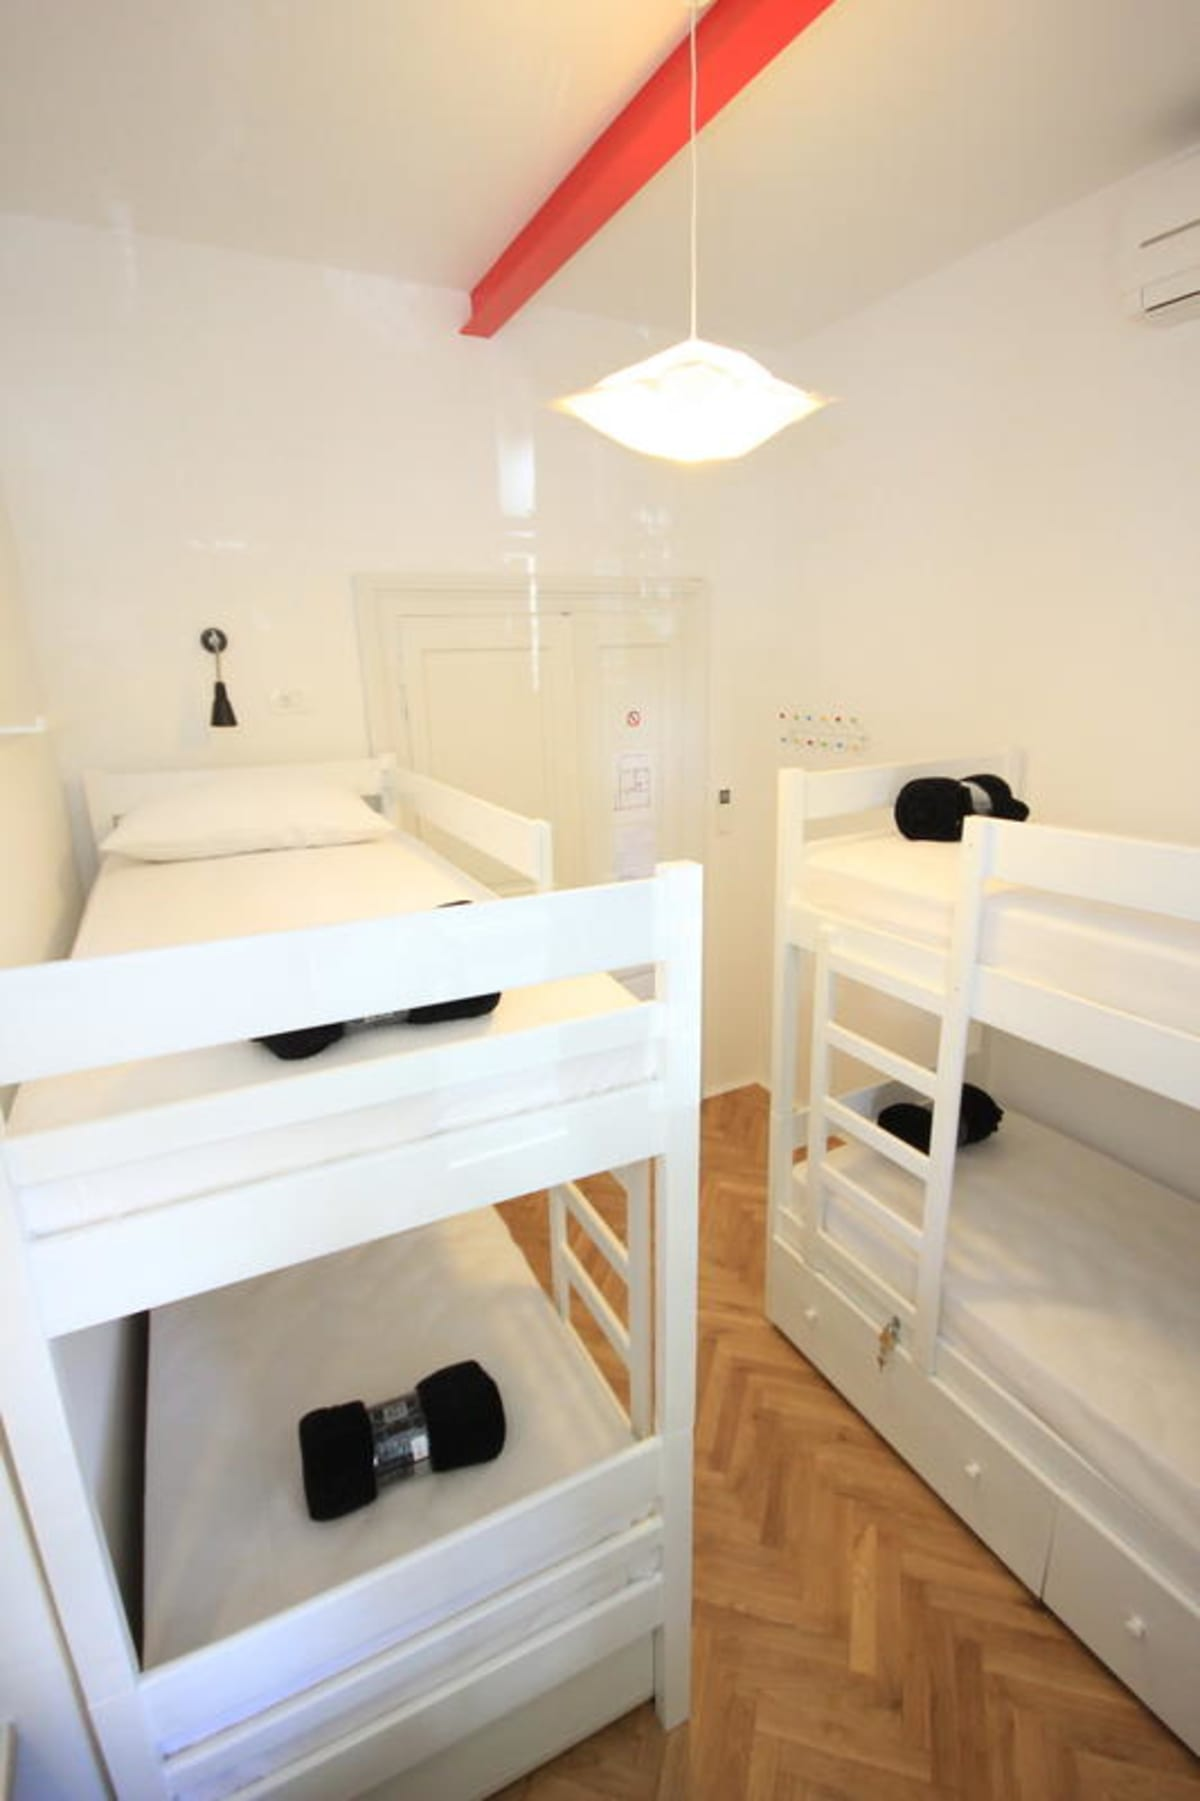 The Hostel, Zadar, Croatia